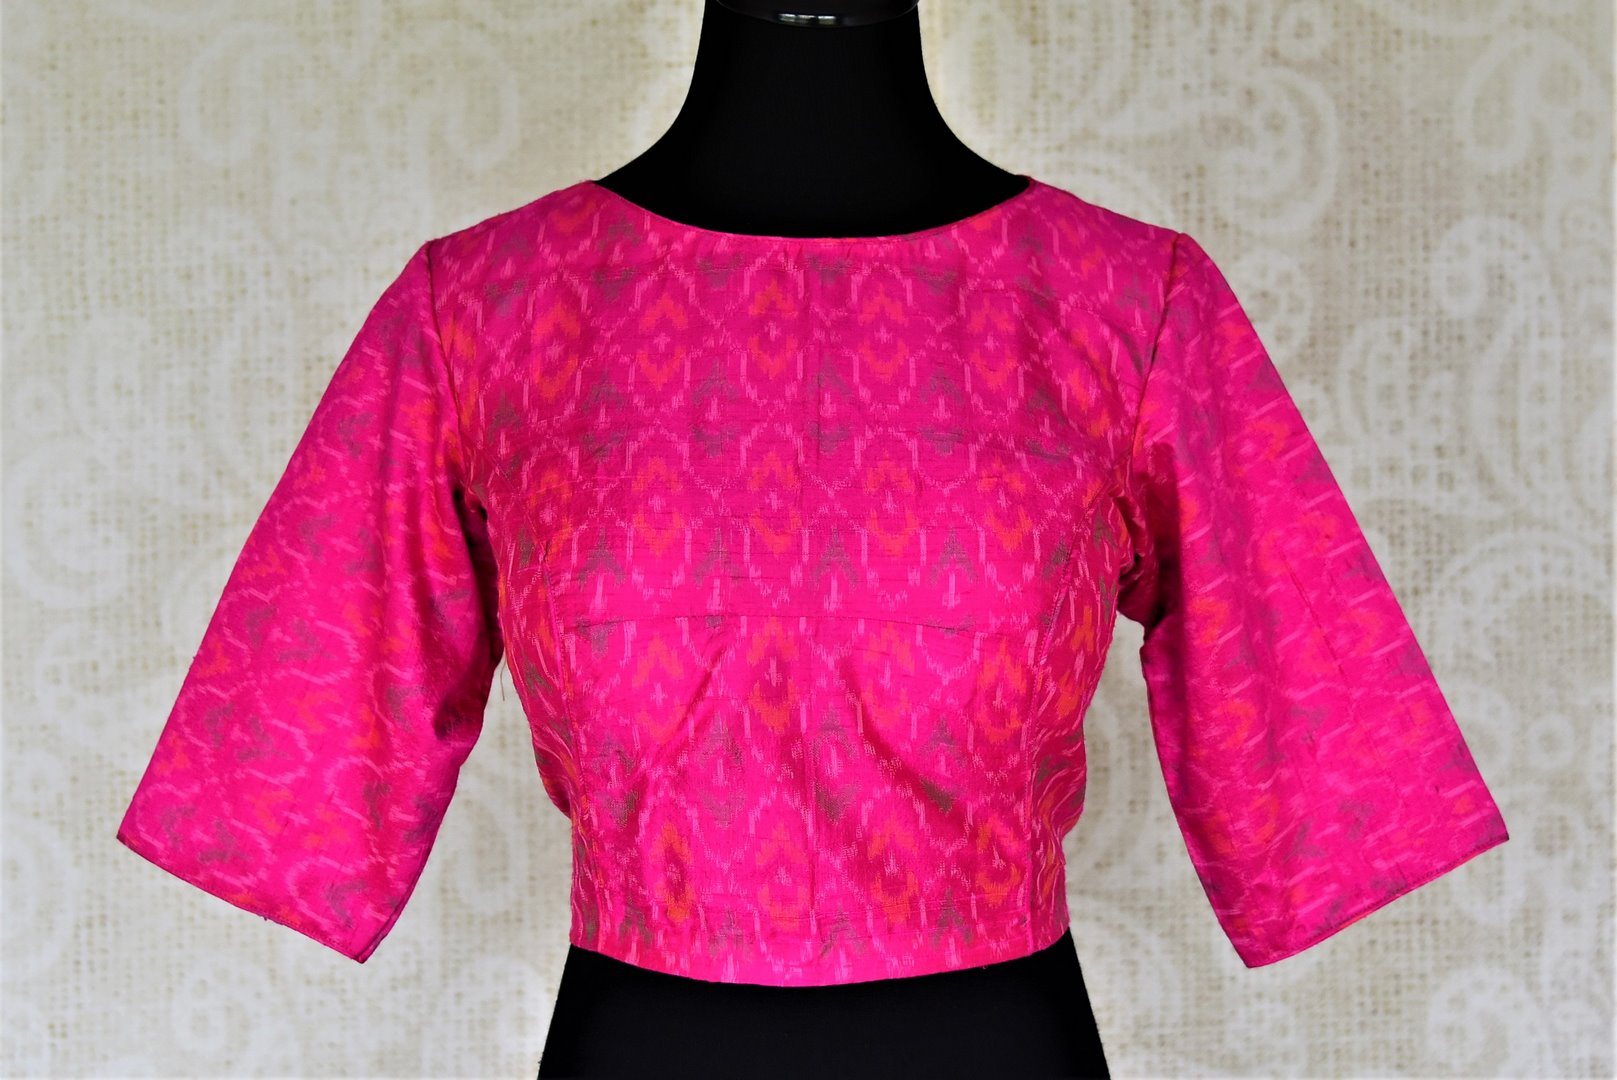 Buy bright fuschia pink ikat silk sari blouse online in USA with keyhole back design. Shop stunning readymade sari blouses, designer saree blouse, embroidered saree blouses for your Indian sarees from Pure Elegance Indian fashion boutique in USA.-front